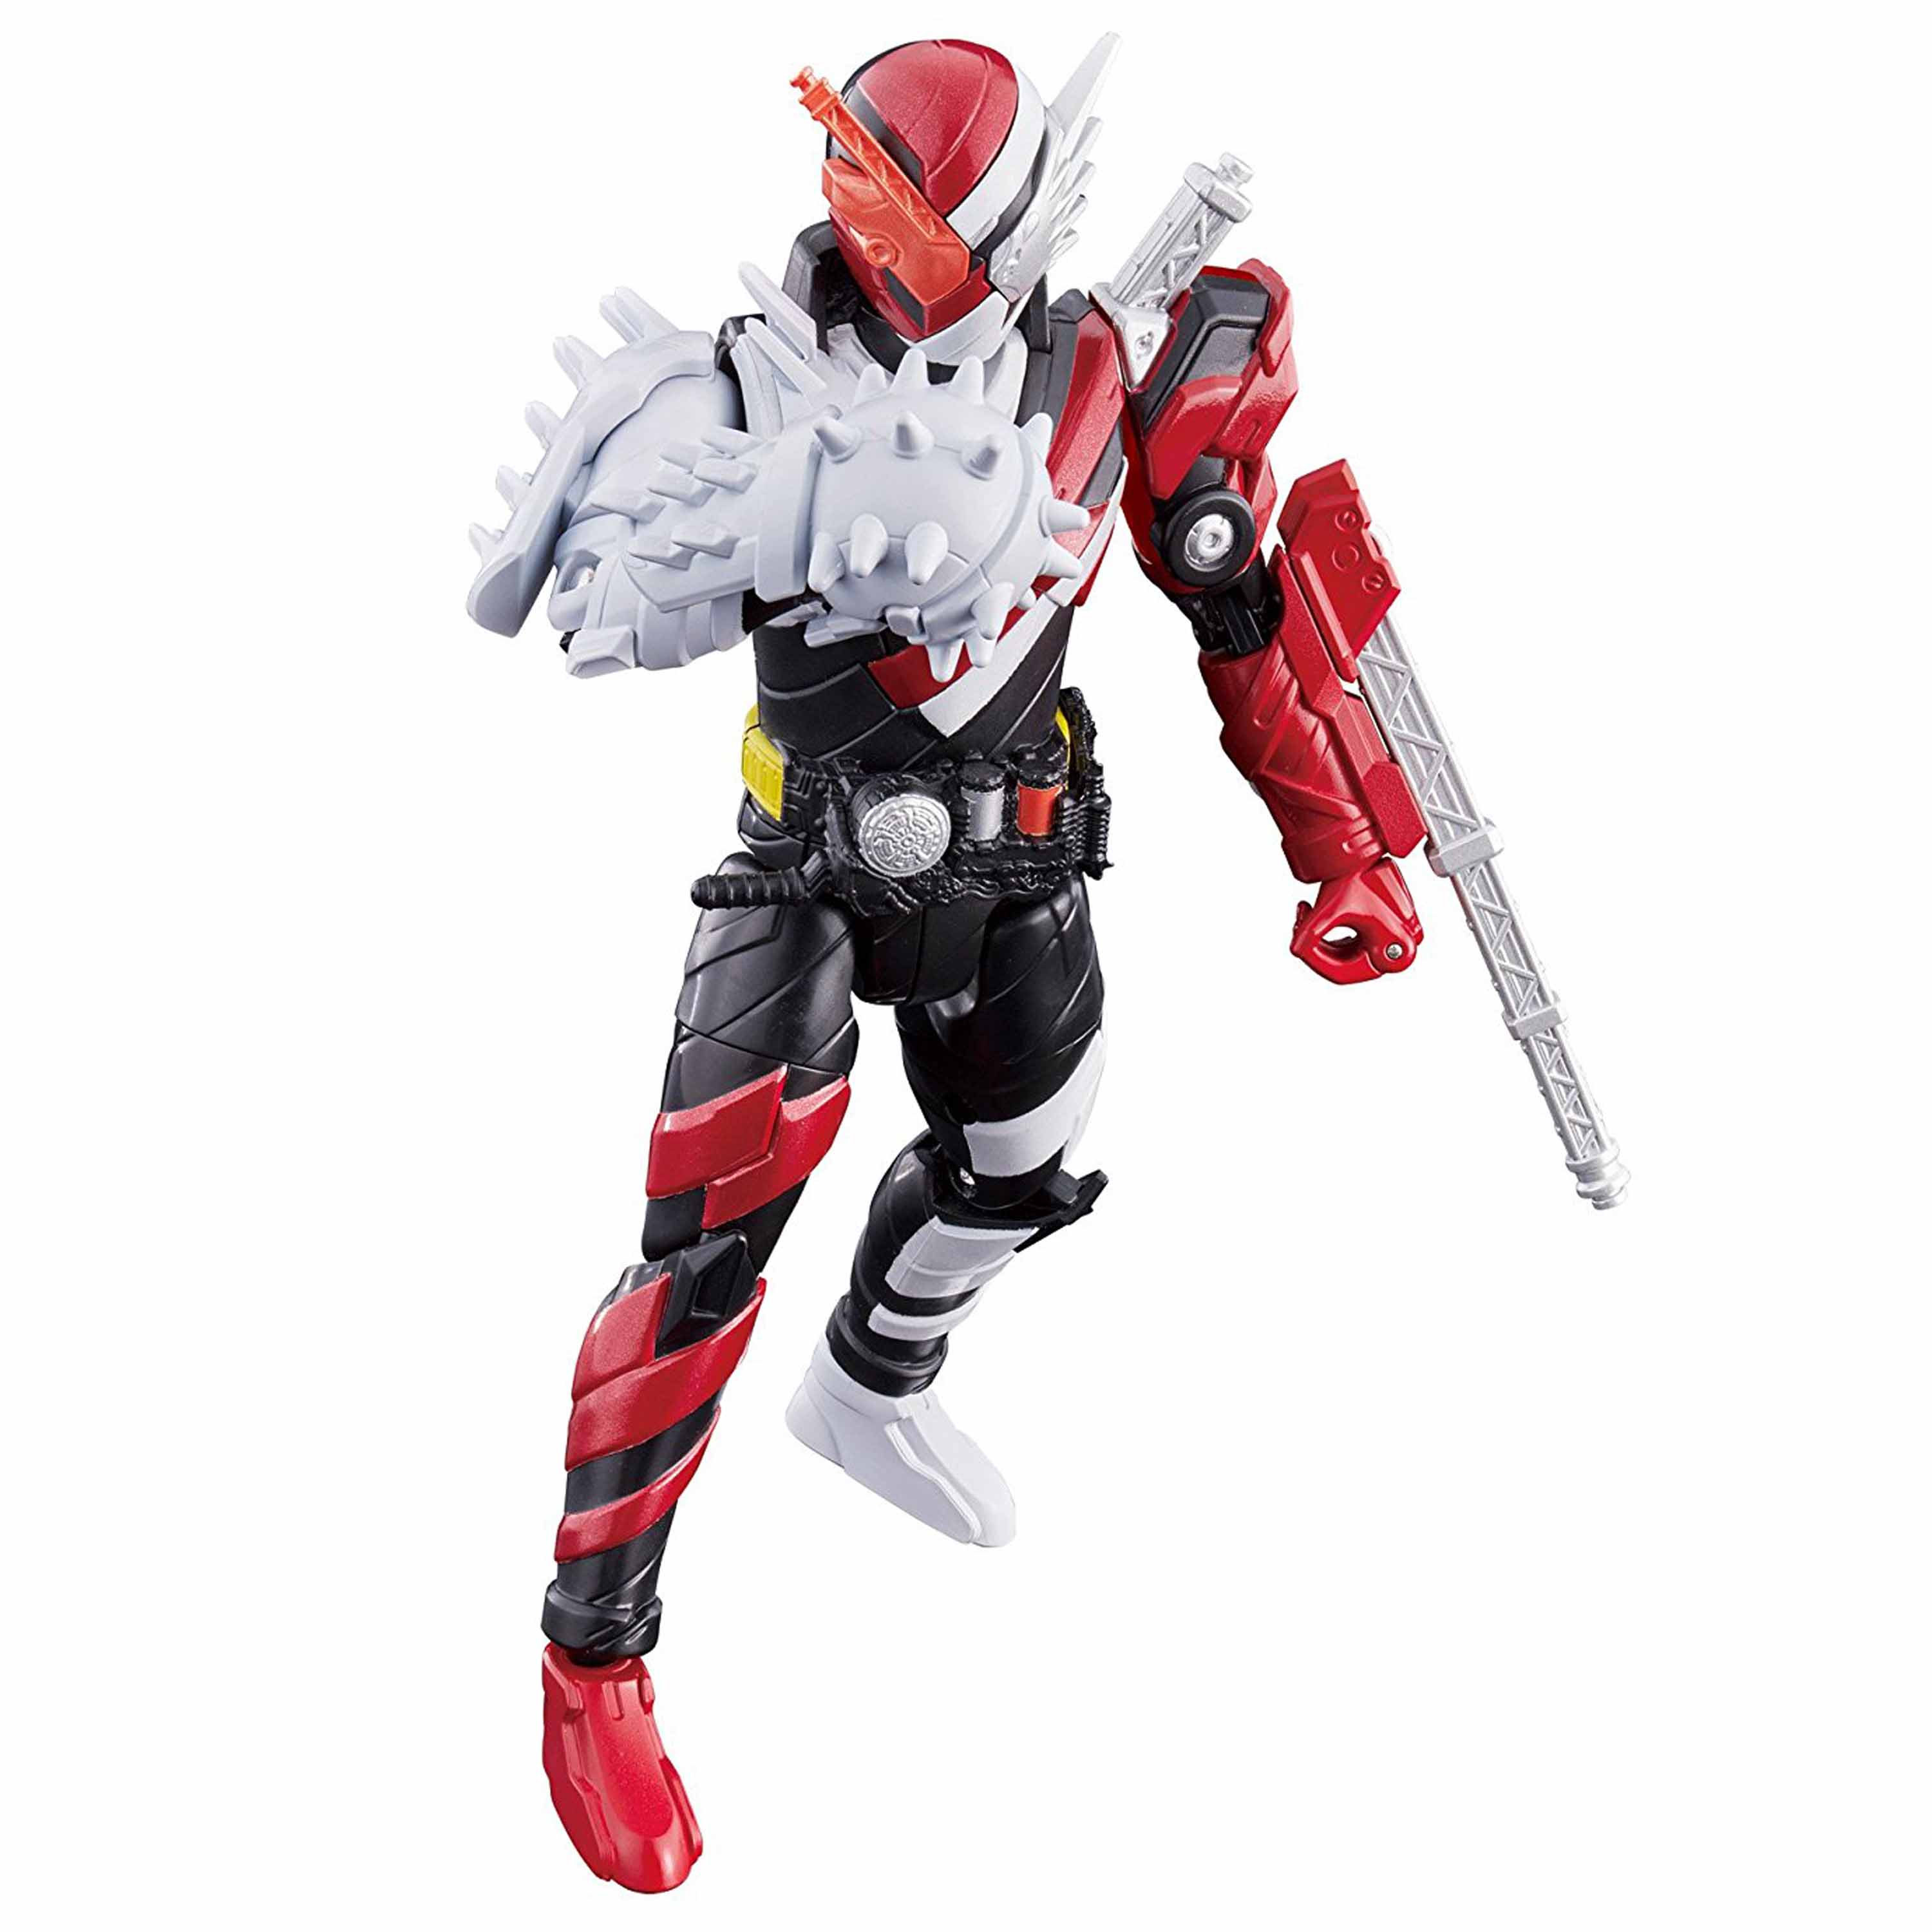 BCR SERIES 05 MASKED RIDER BUILD FIRE HEDGEHOG FORM